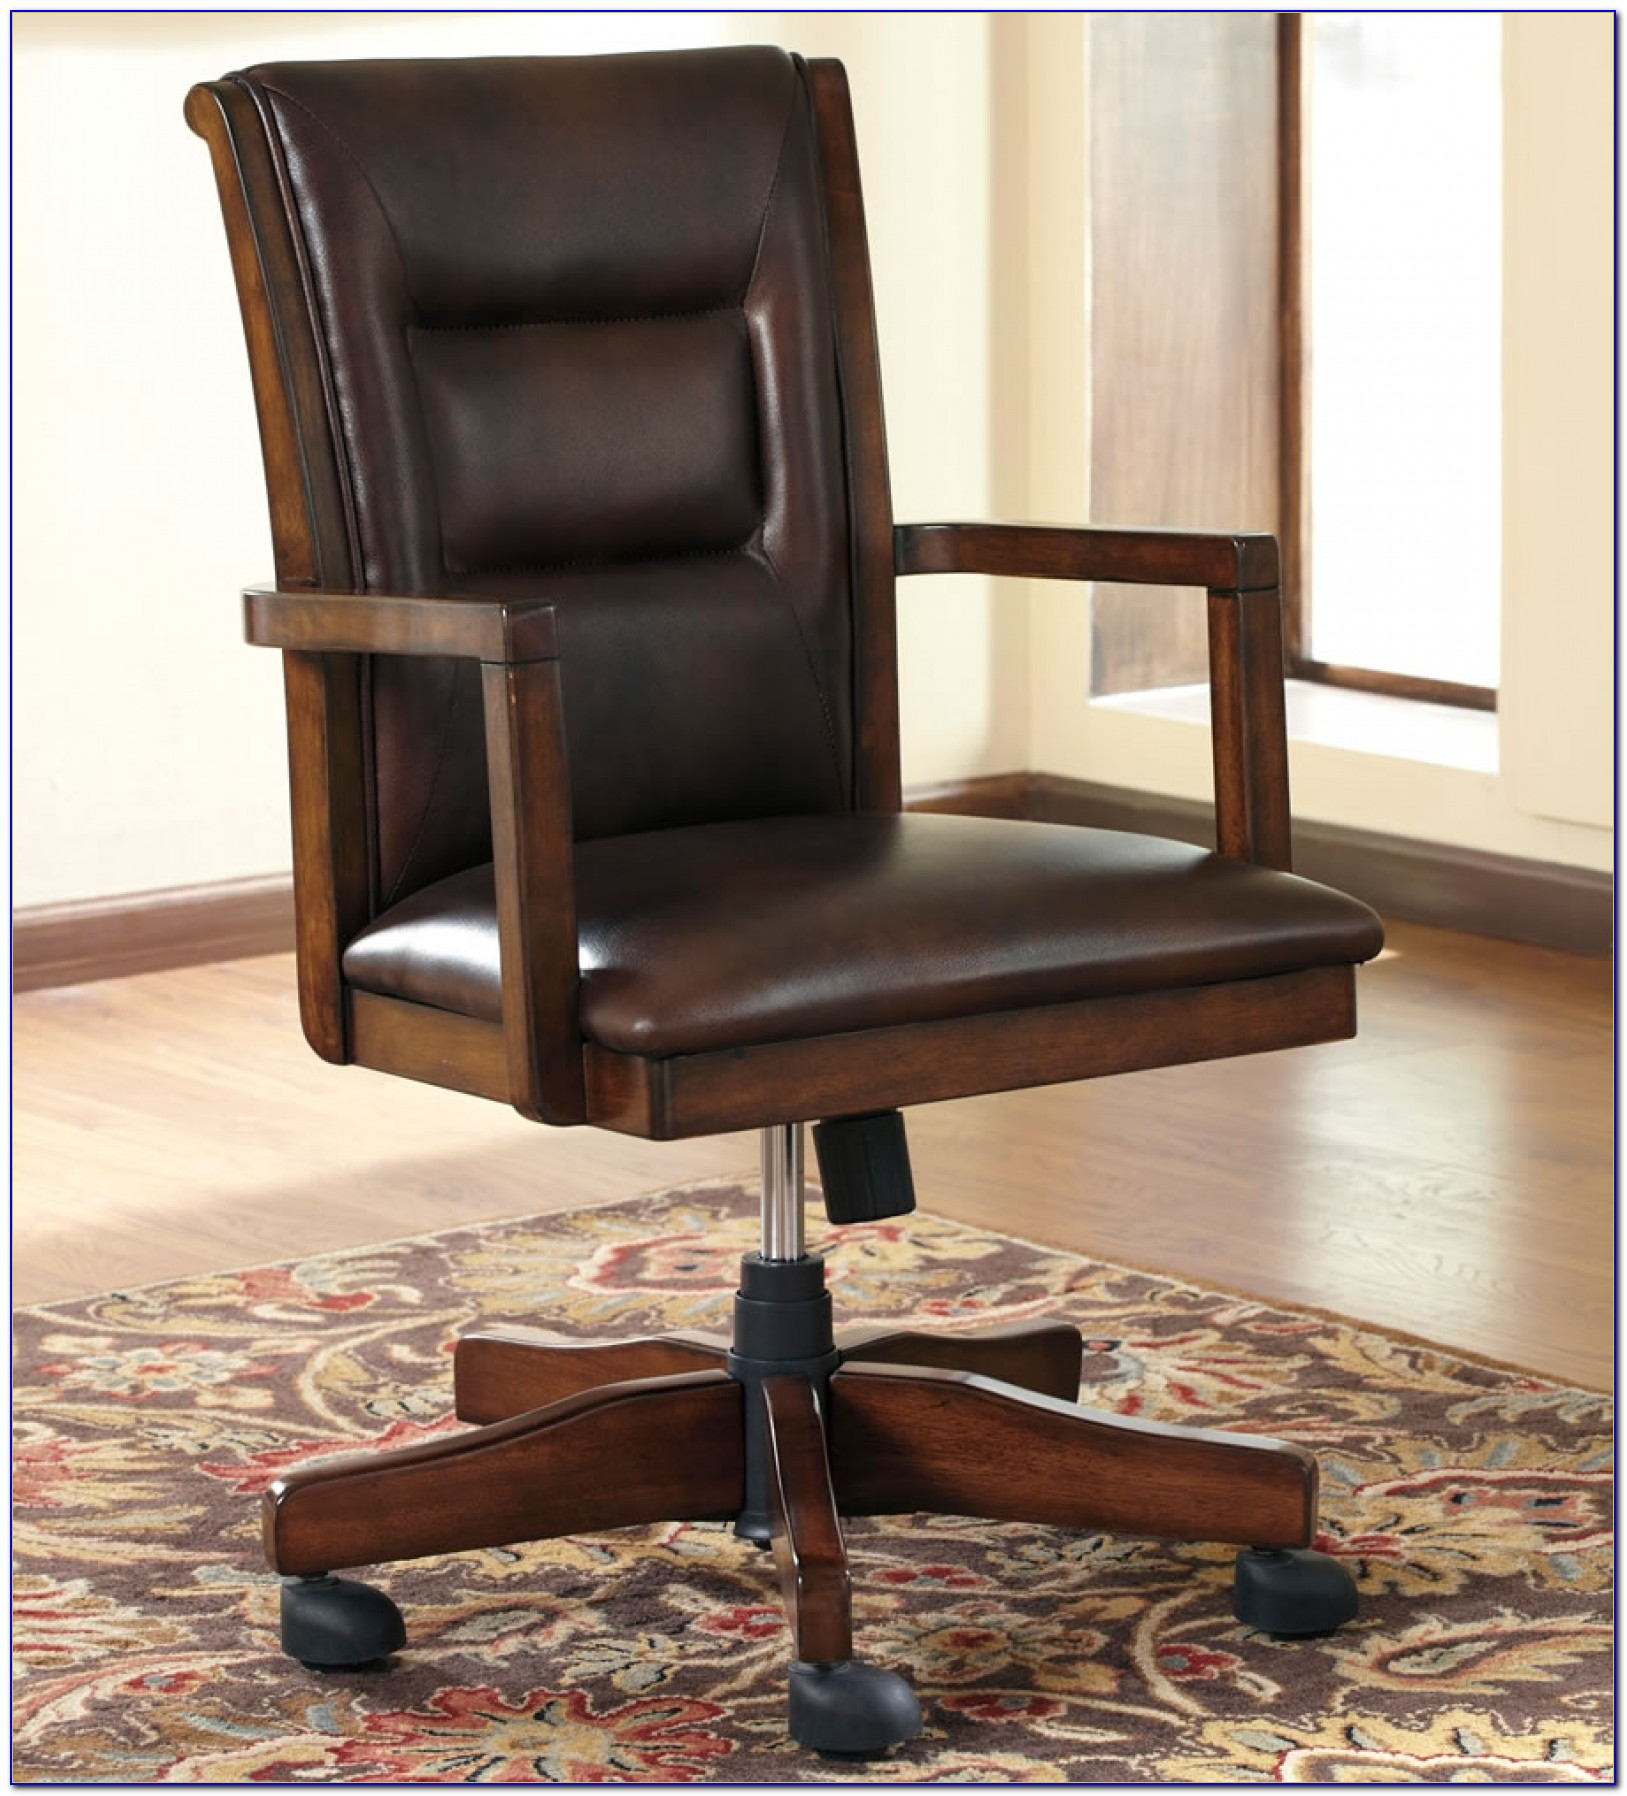 rolling office chair on carpet antique table and chairs wooden swivel desk australia home design